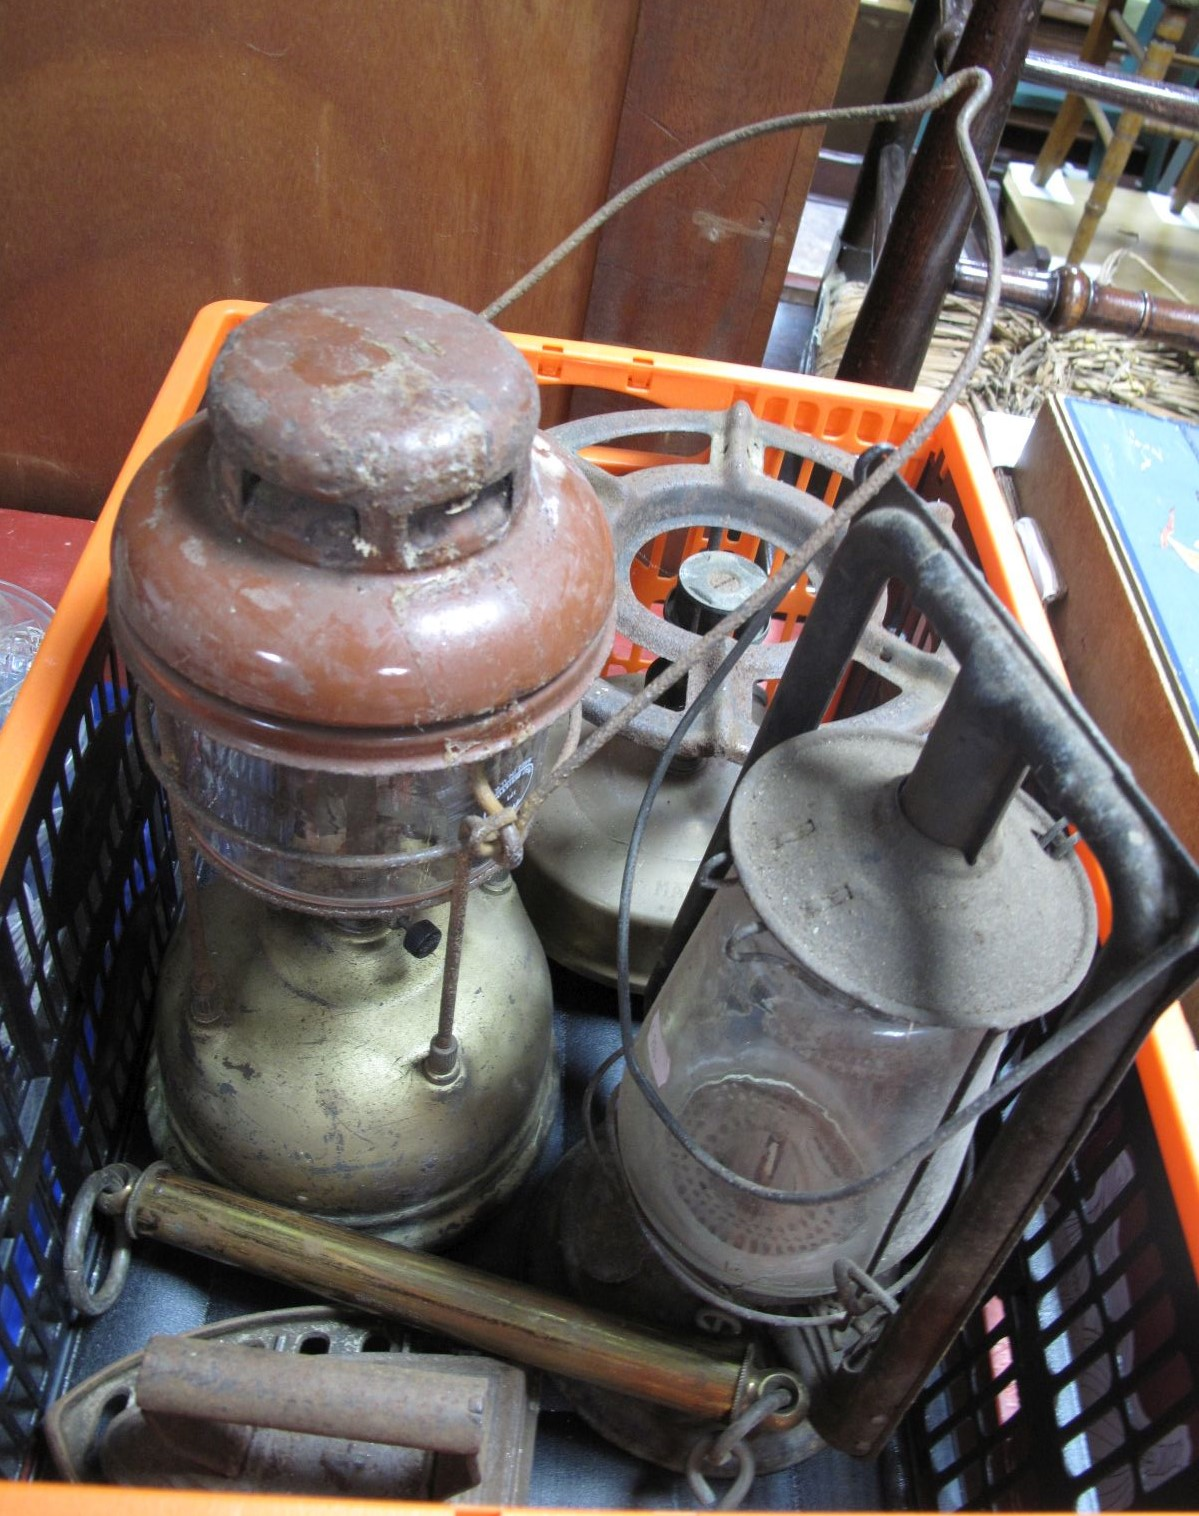 Lot 56 - Two Hurricane Lamps, Primus stove, flat irons, Salter spring scales.